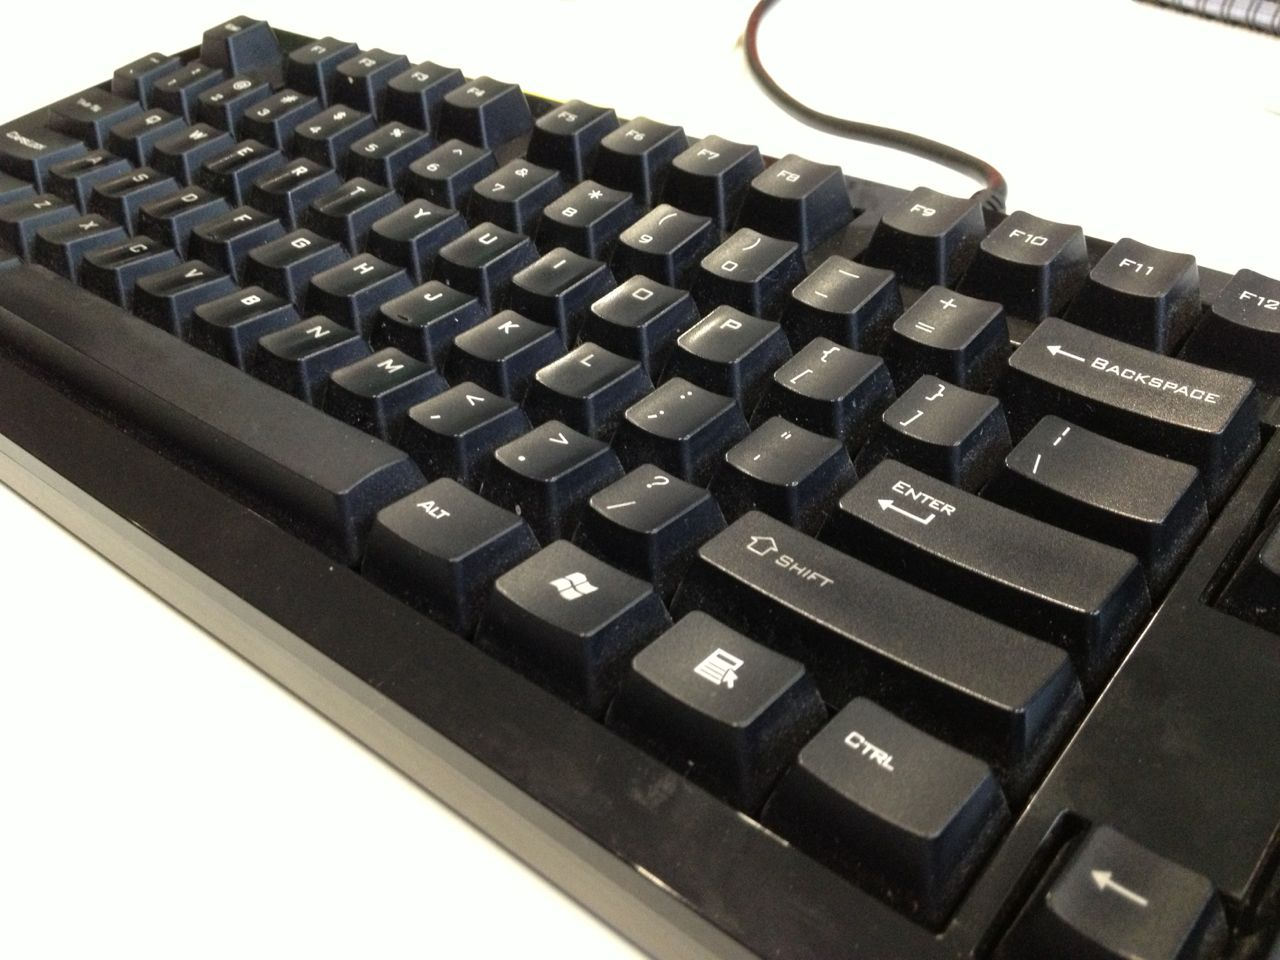 Clavier Das Keyboard Cherry Brown 3